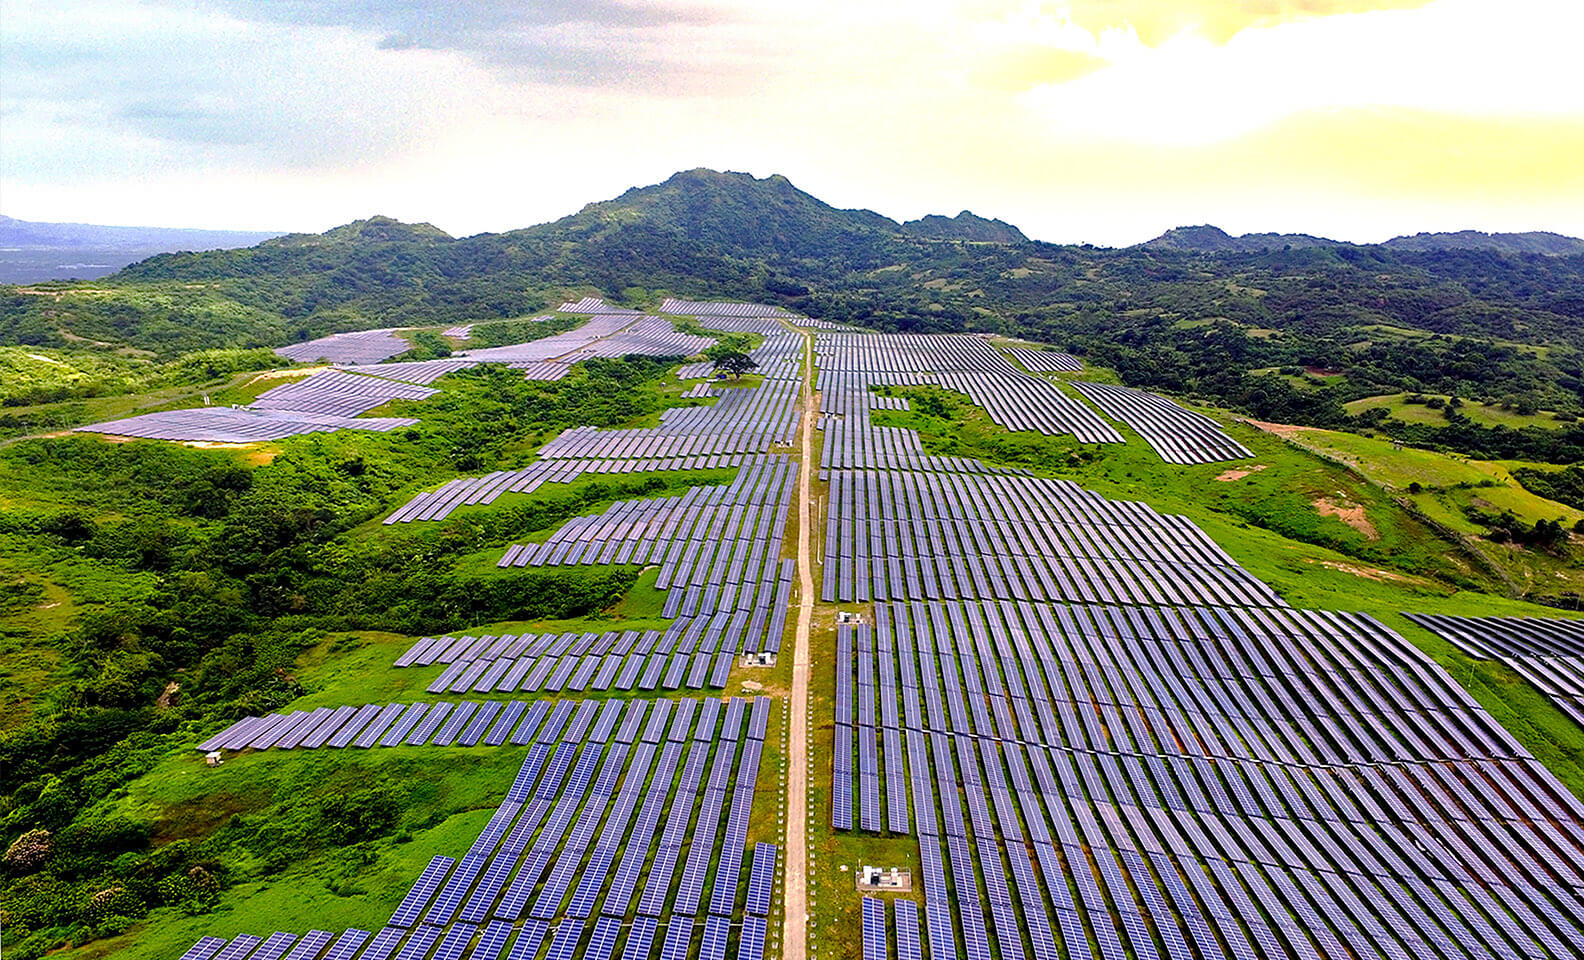 Governments across Southeast Asia accelerate renewable energy investment